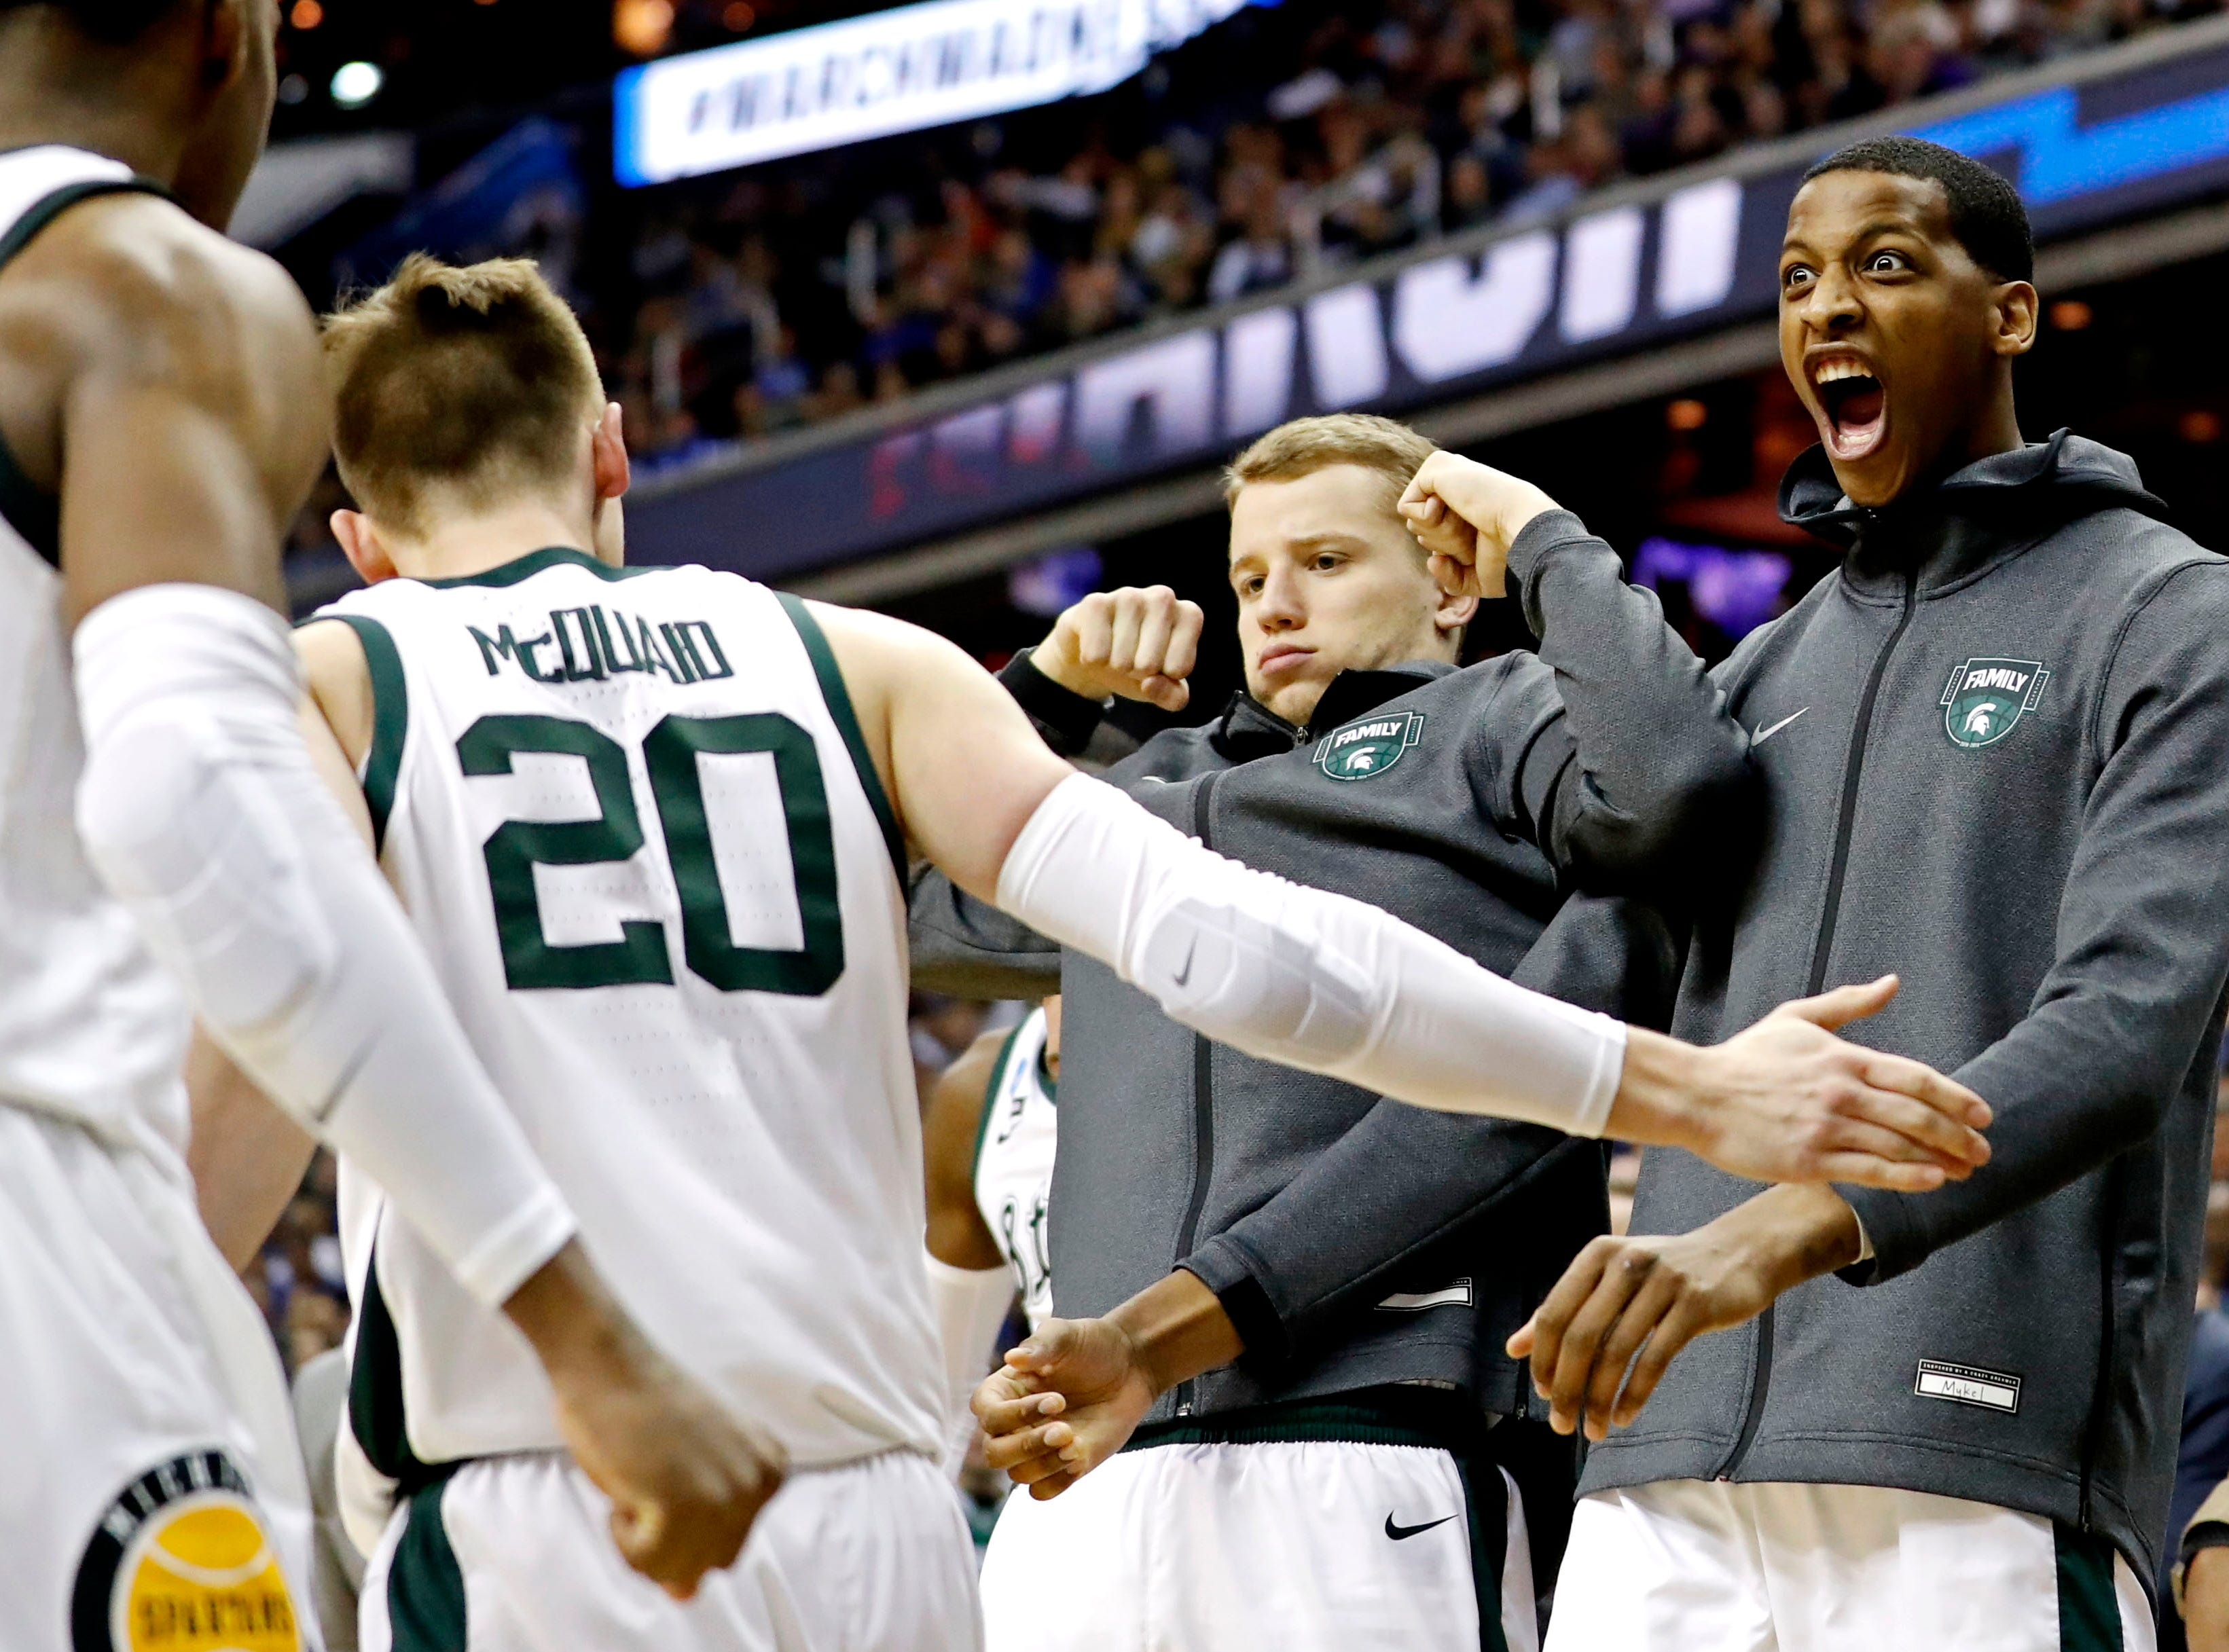 Mar 29, 2019; Washington, DC, USA; The Michigan State Spartans reacts with guard Matt McQuaid (20) during the second half against the LSU Tigers in the semifinals of the east regional of the 2019 NCAA Tournament at Capital One Arena. Mandatory Credit: Geoff Burke-USA TODAY Sports